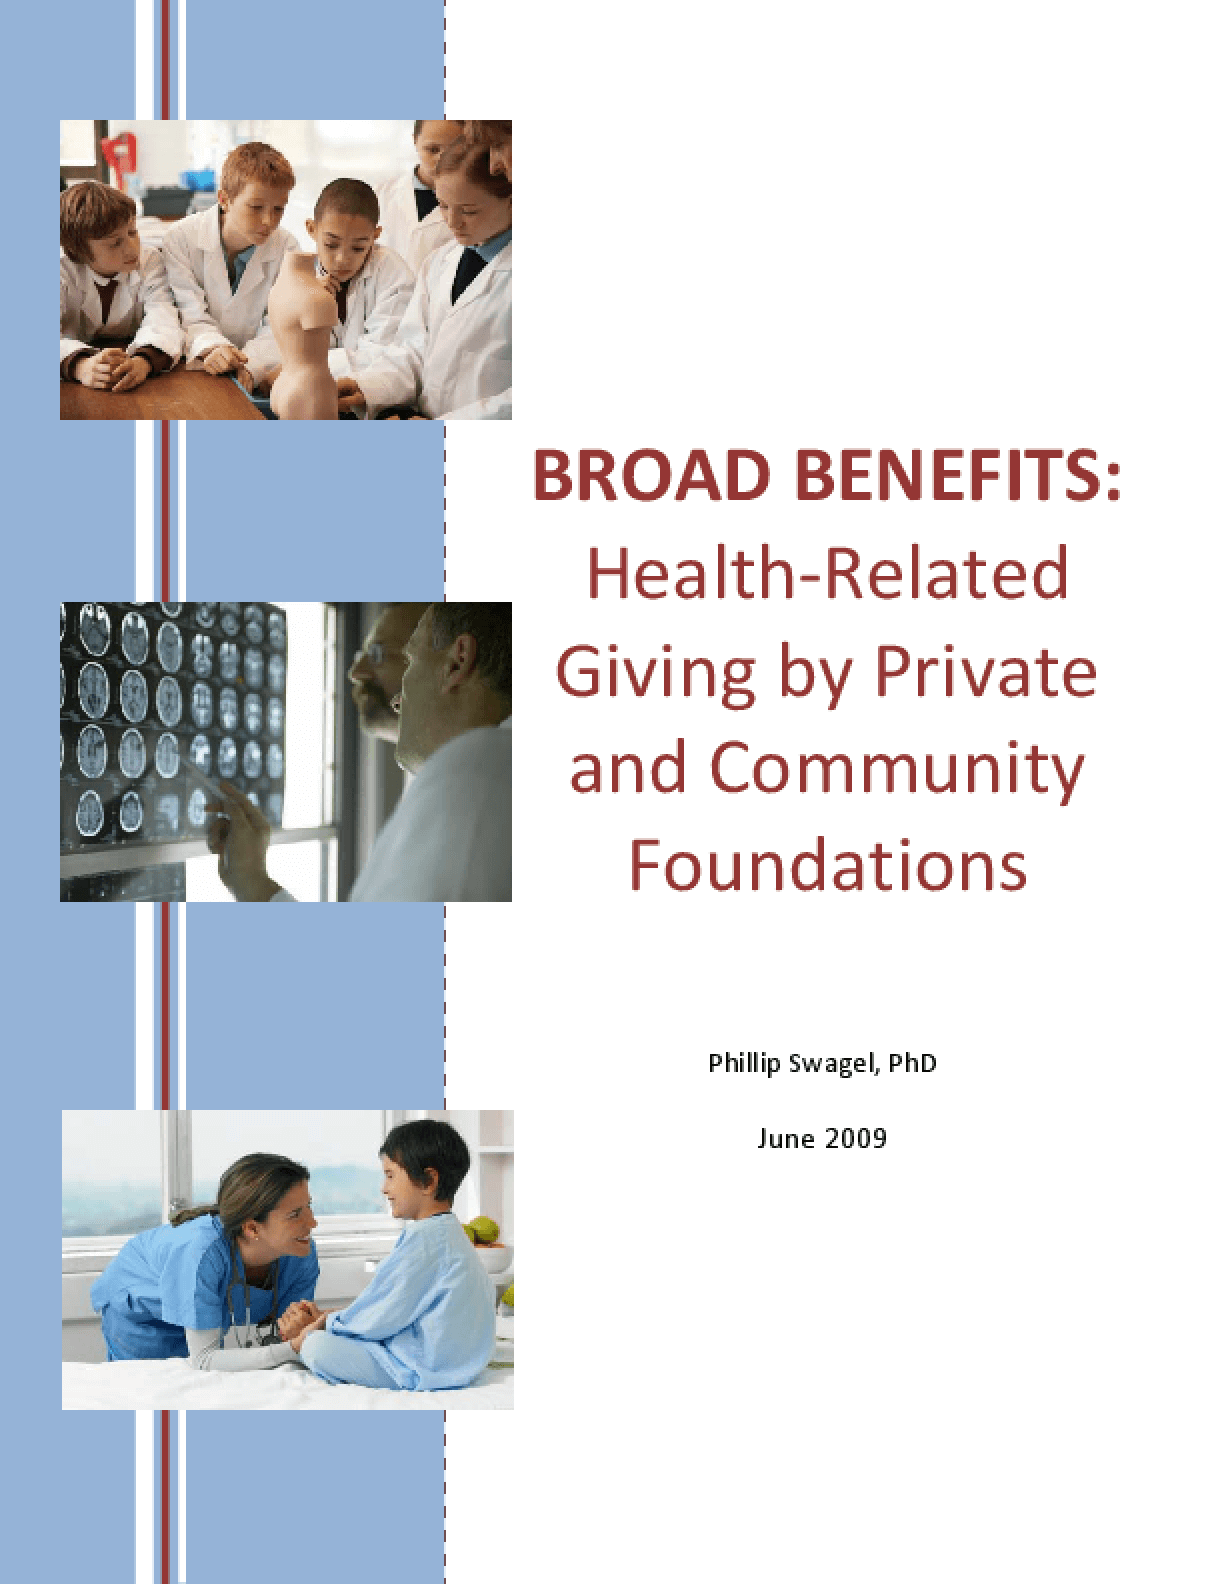 Broad Benefits: Health-related Giving By Private and Community Foundations